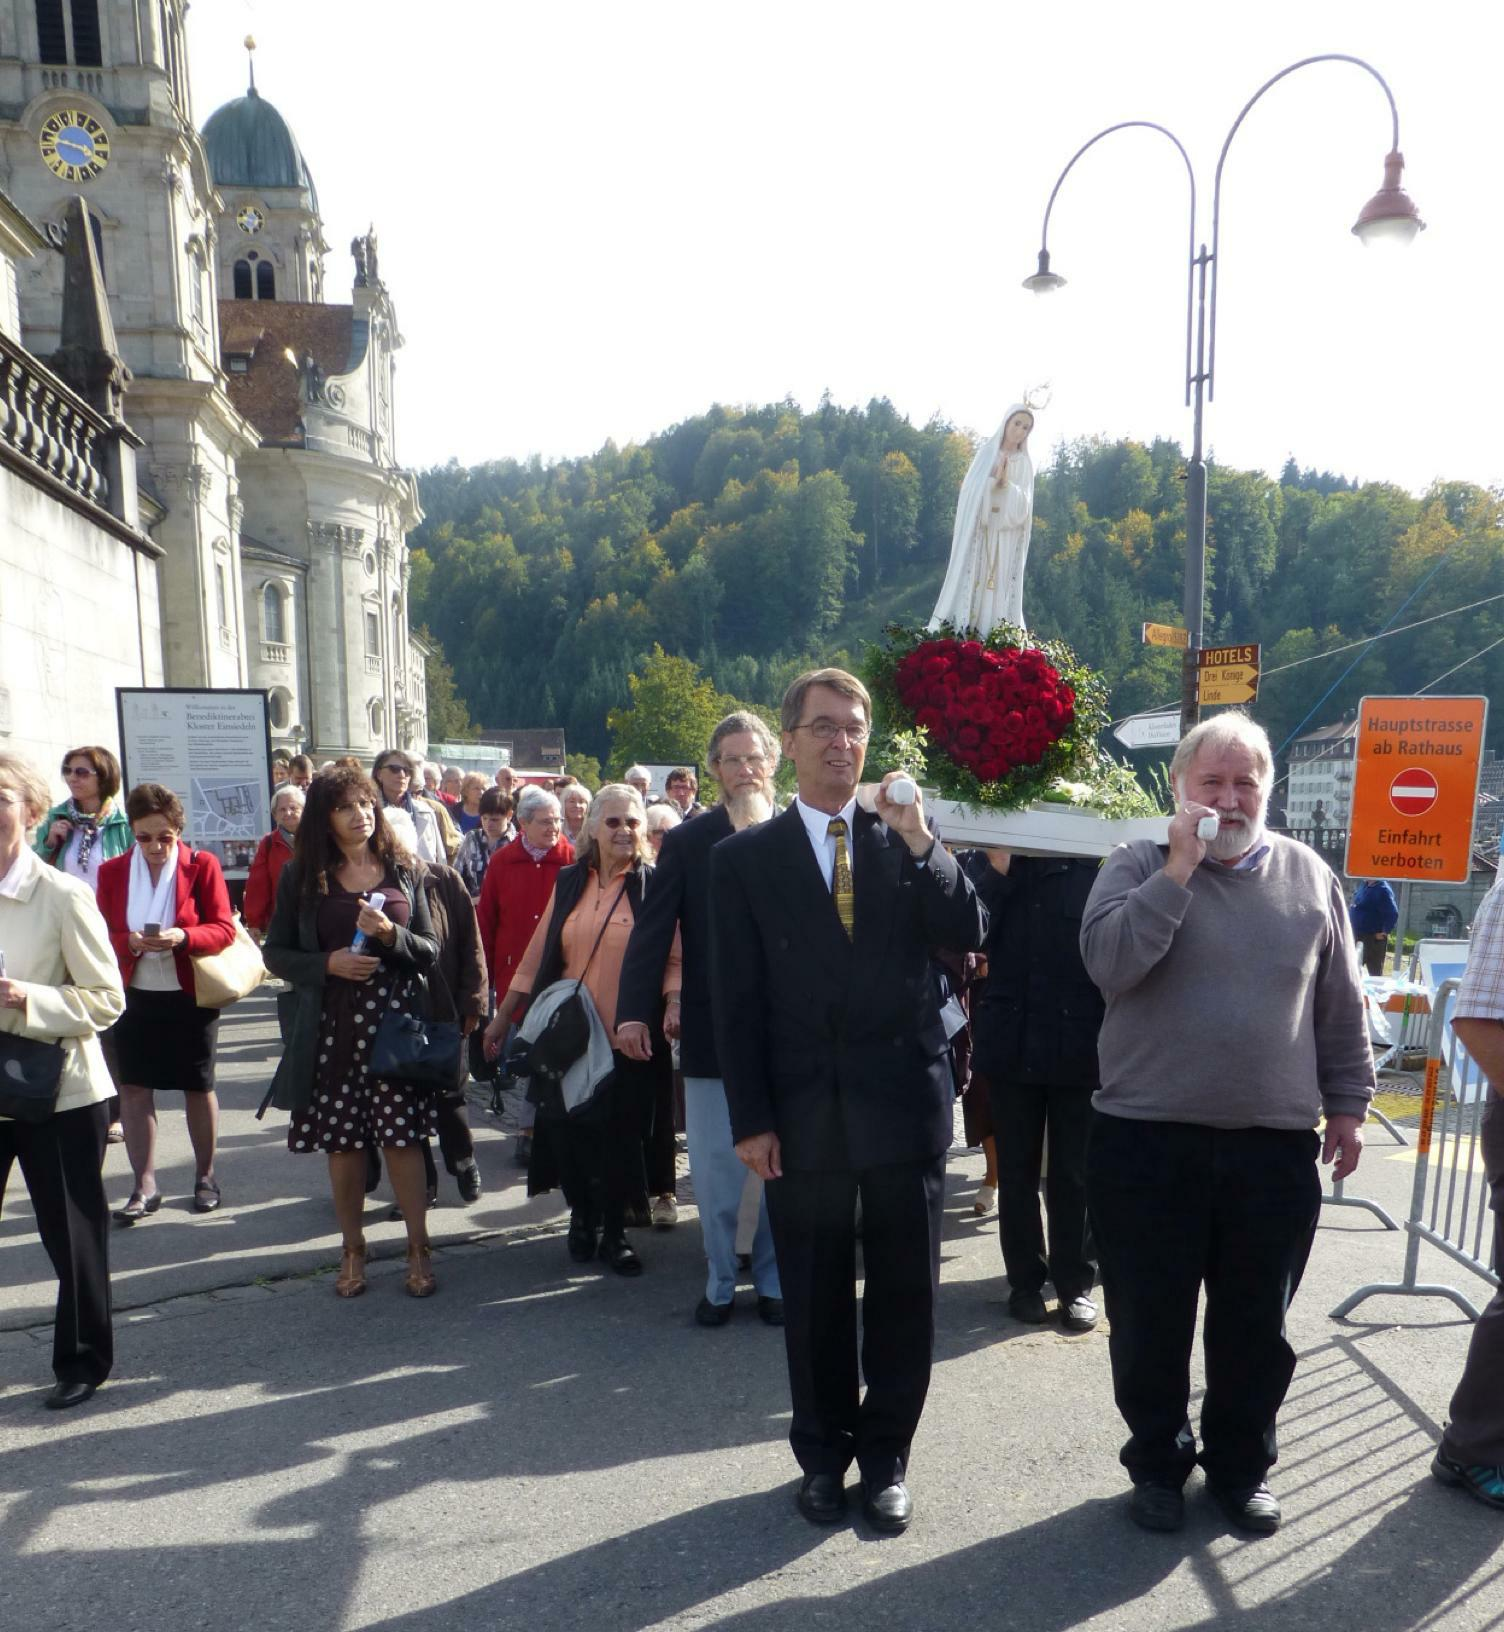 Nationaler-Fatima-Gebetstag-in-Einsiedeln-am-22-September-2013-22.jpg